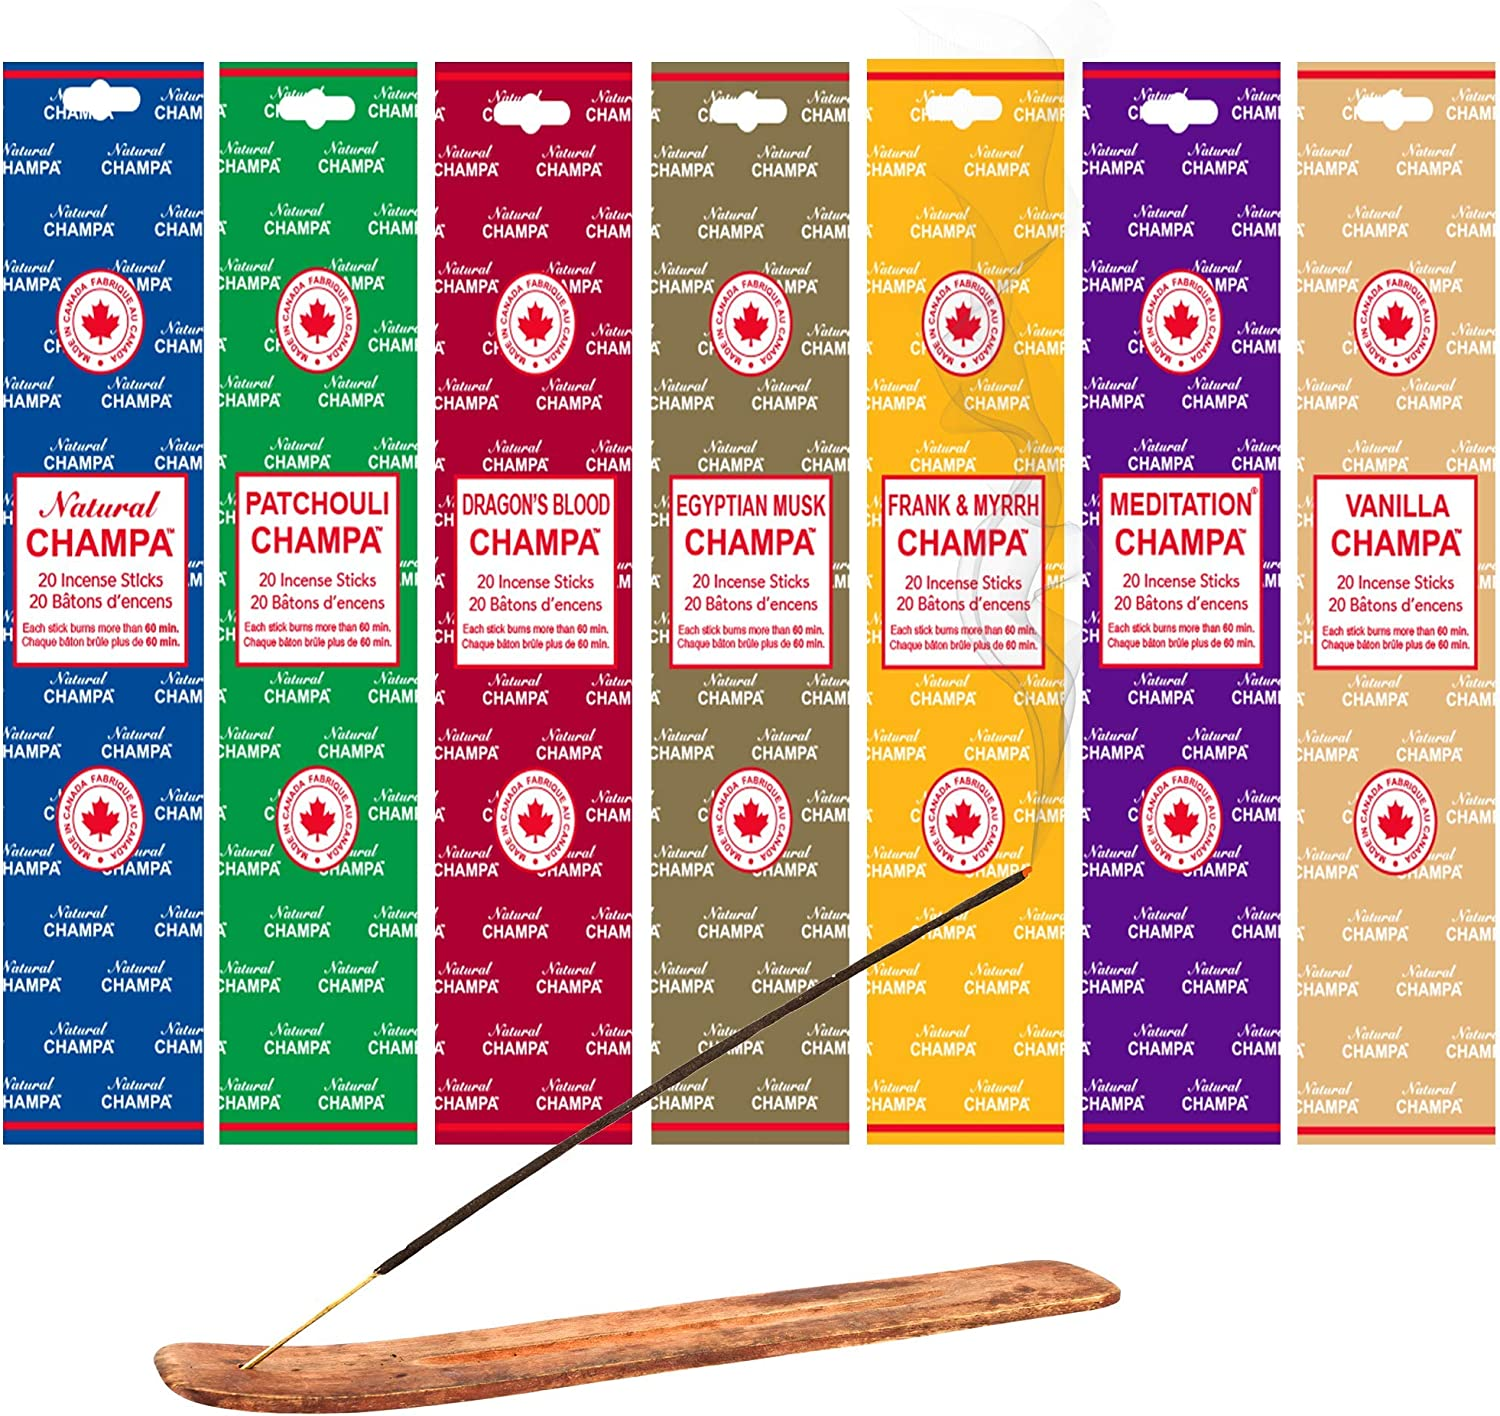 Natural Champa Meditation Incense Set - 140x 60 Minute Sticks with Complimentary Wood Burner - Hand Dipped - Also Perfect for Environmental Scenting and Purification